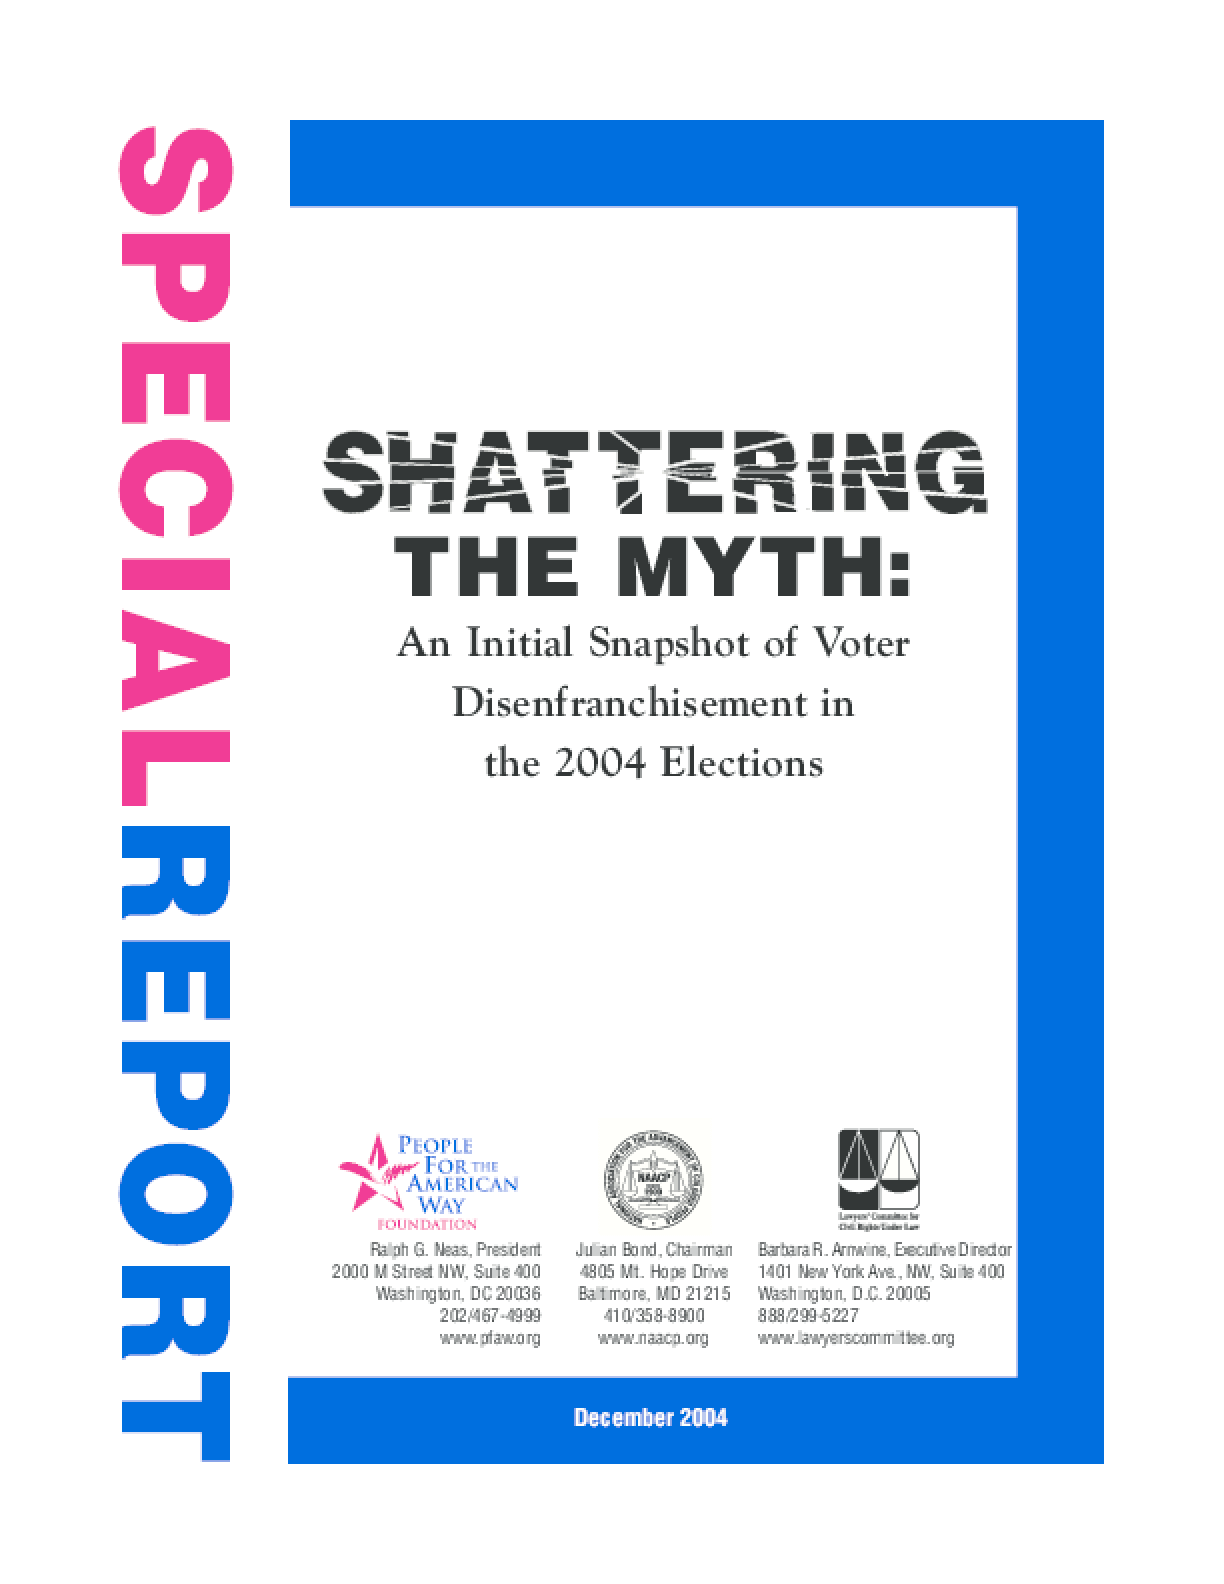 Shattering the Myth: An Initial Snapshot of Voter Disenfranchisement in the 2004 Elections